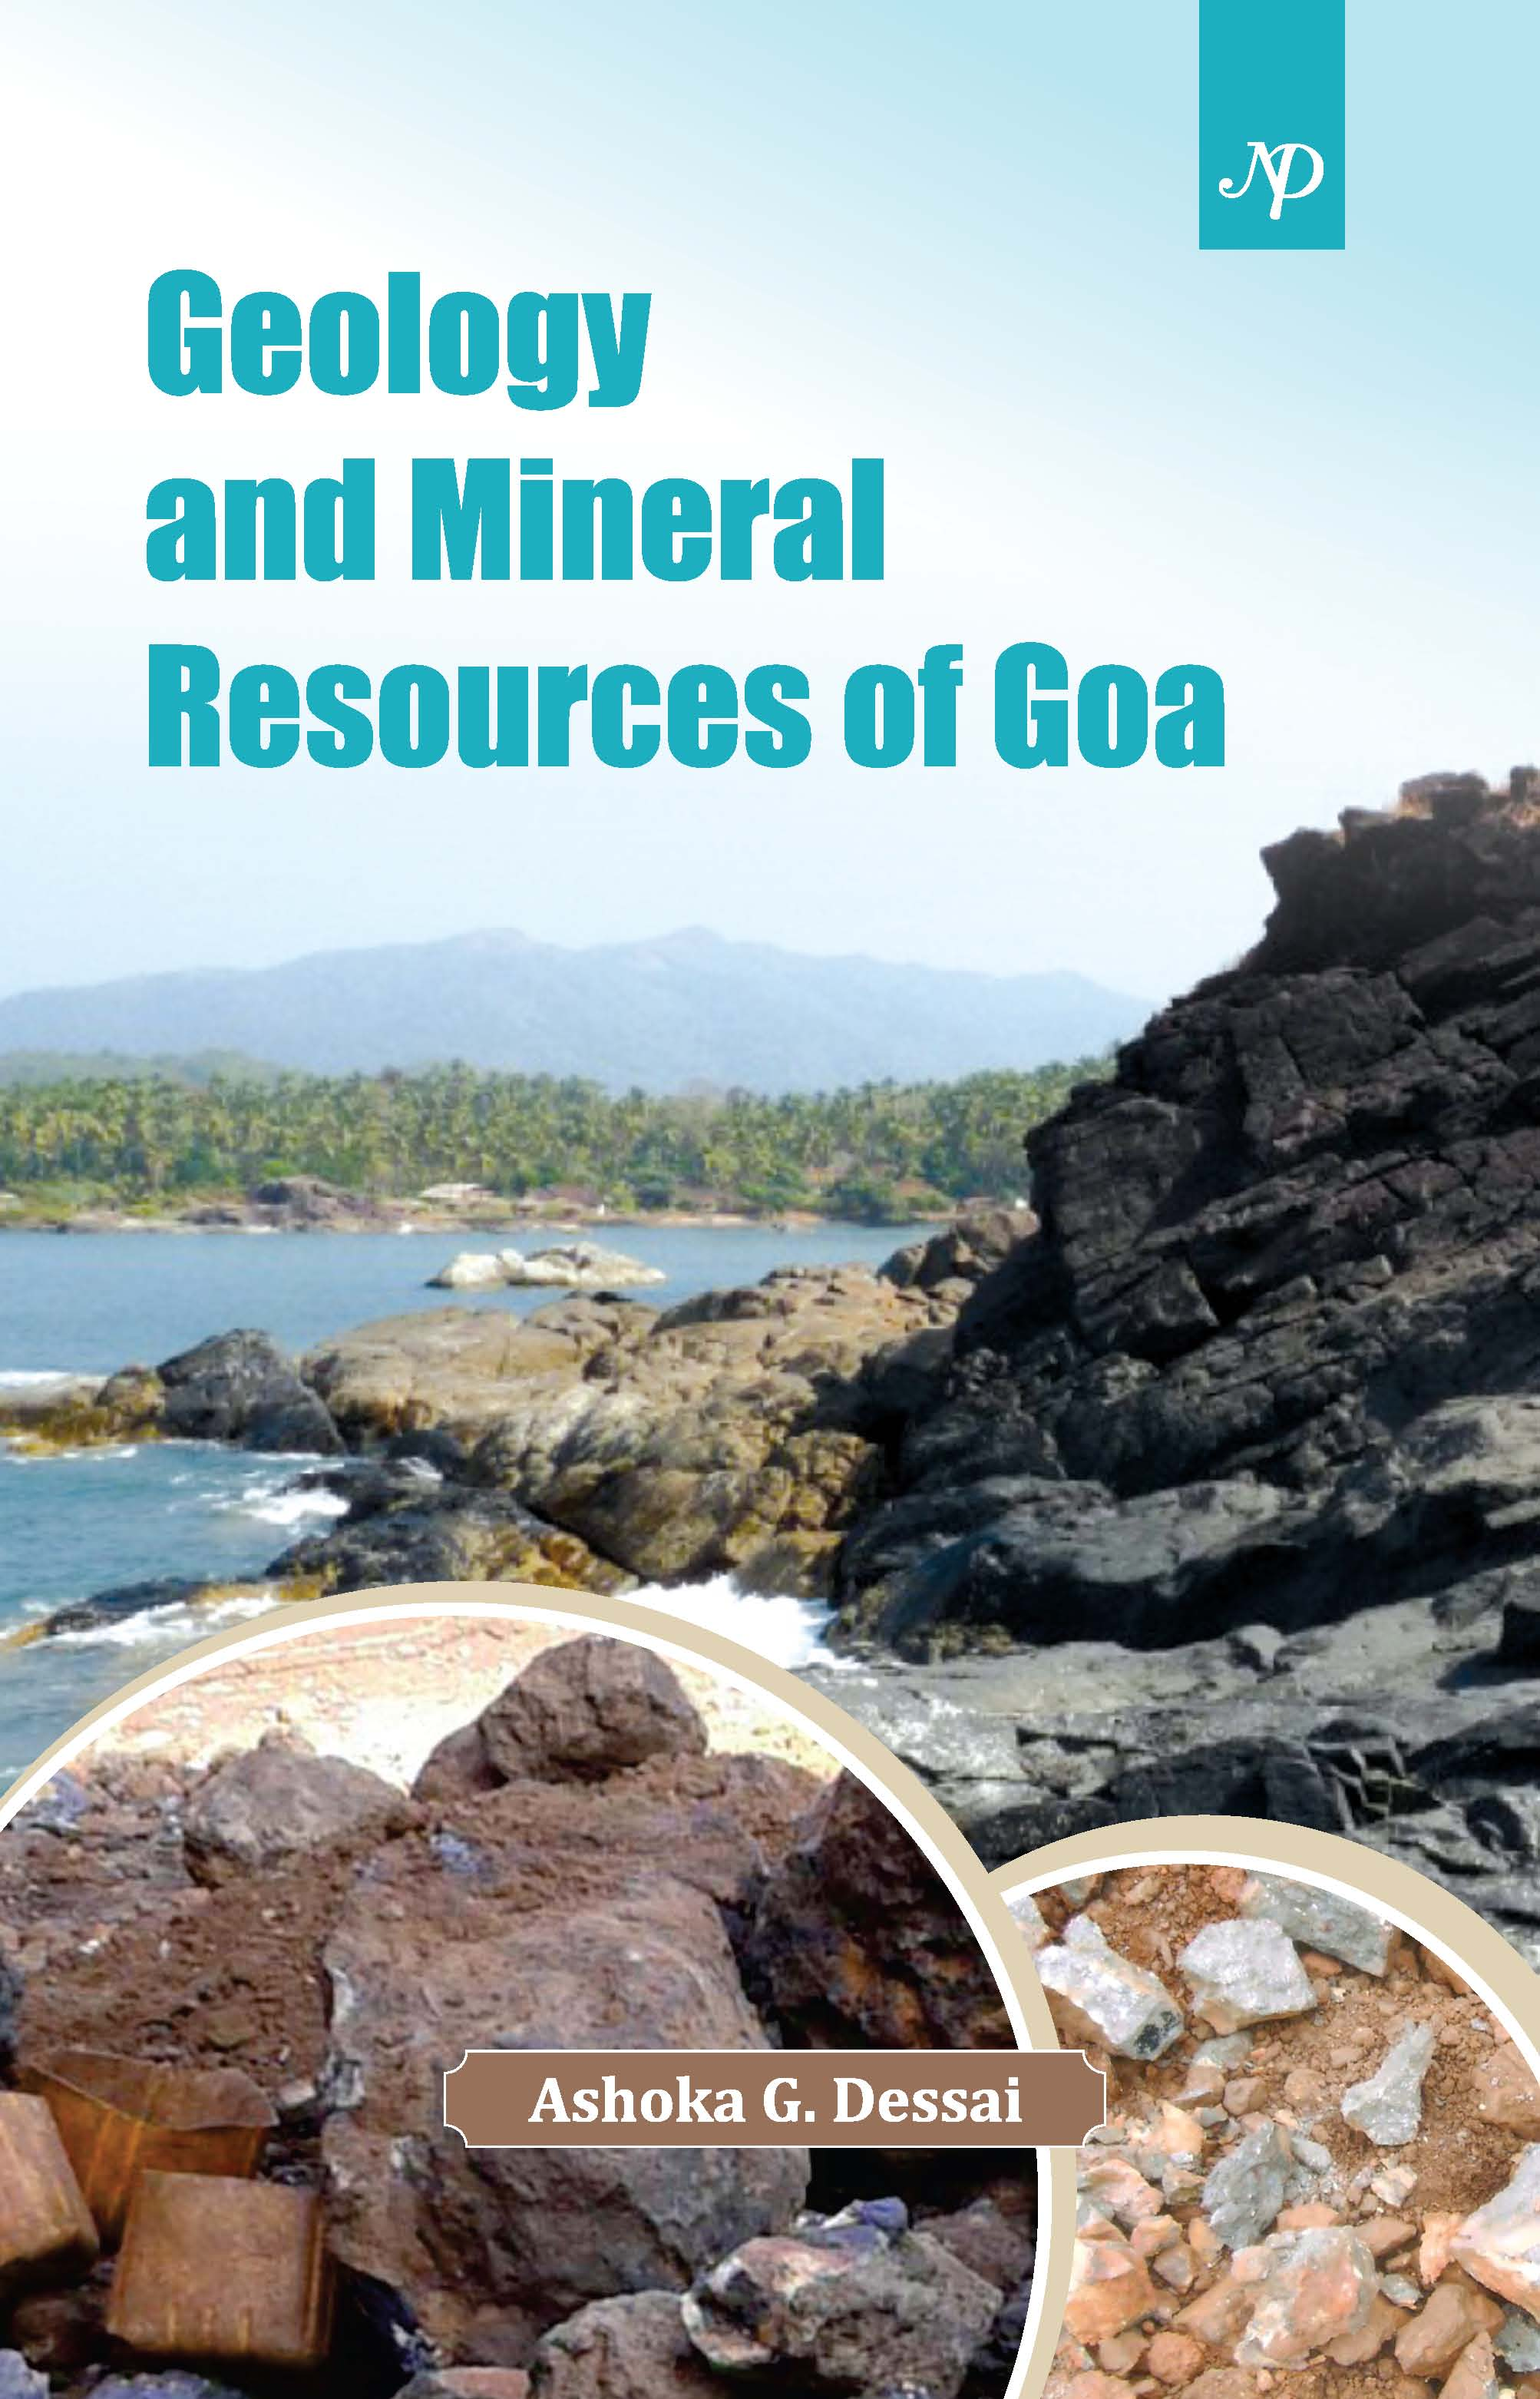 Geology and Mineral Resource in goa.jpg